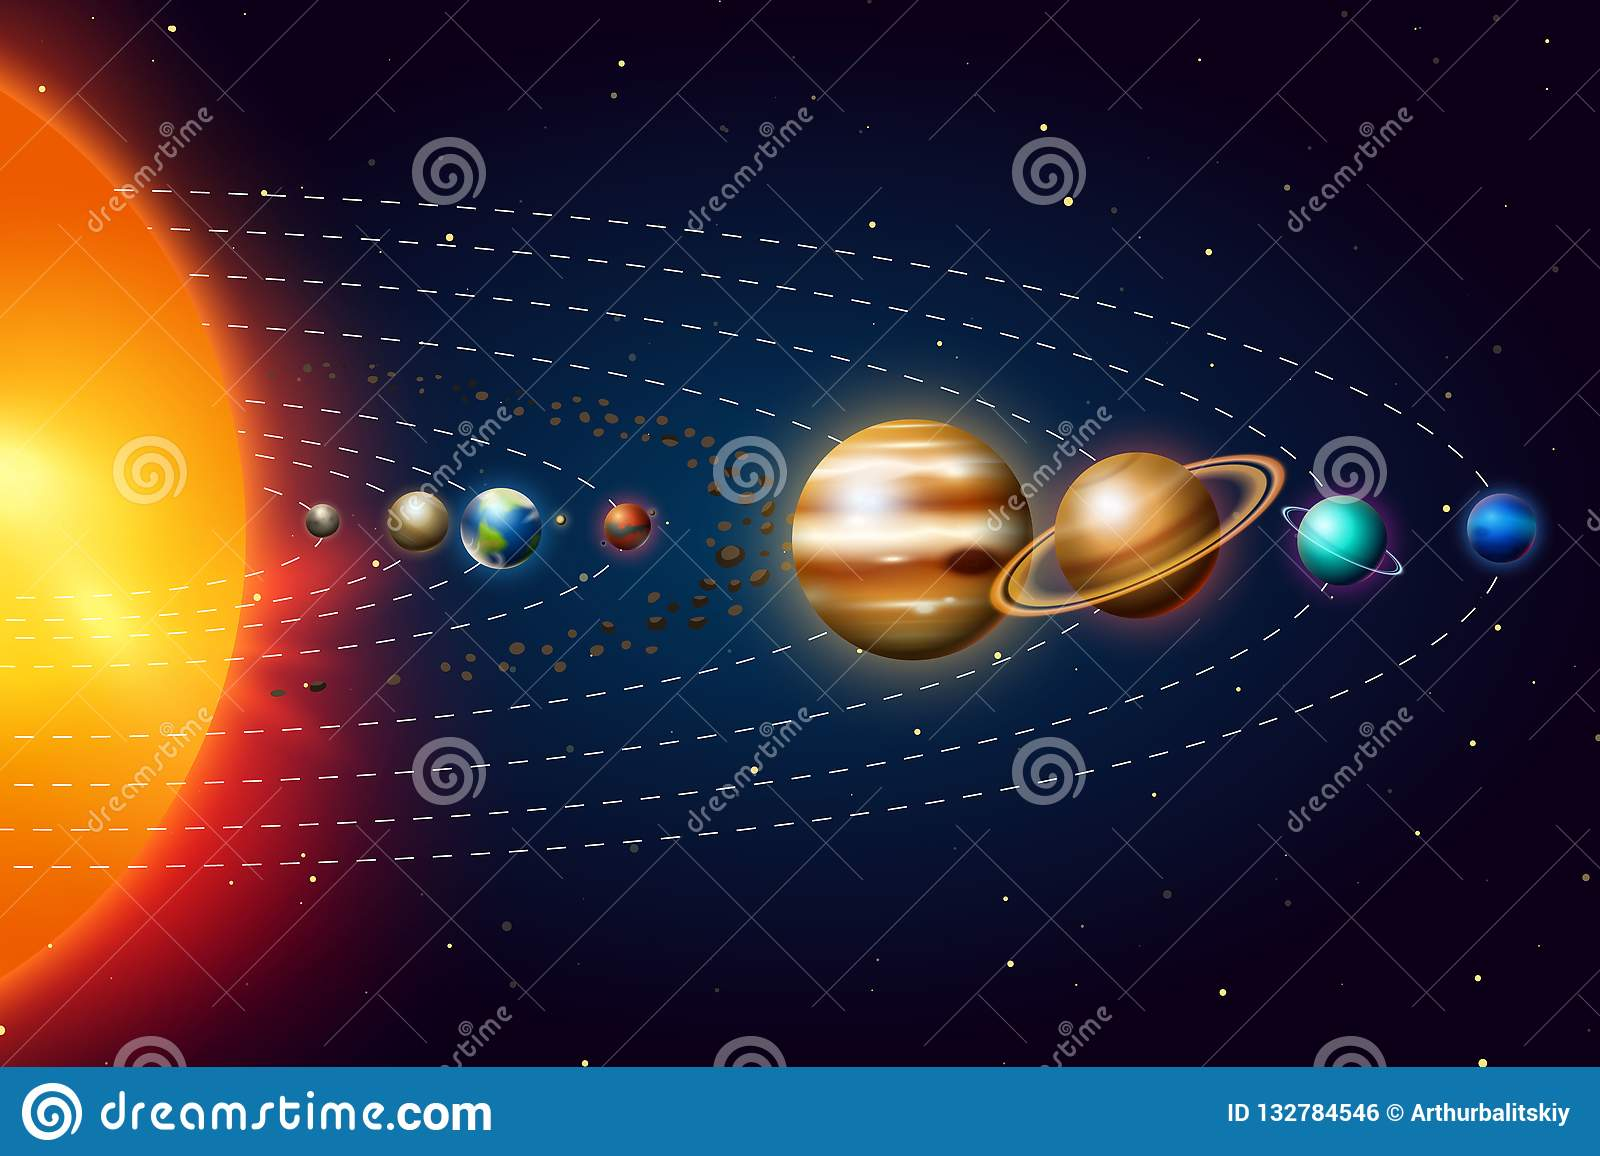 Planets Of The Solar System Or Model In Orbit Milky Way Space